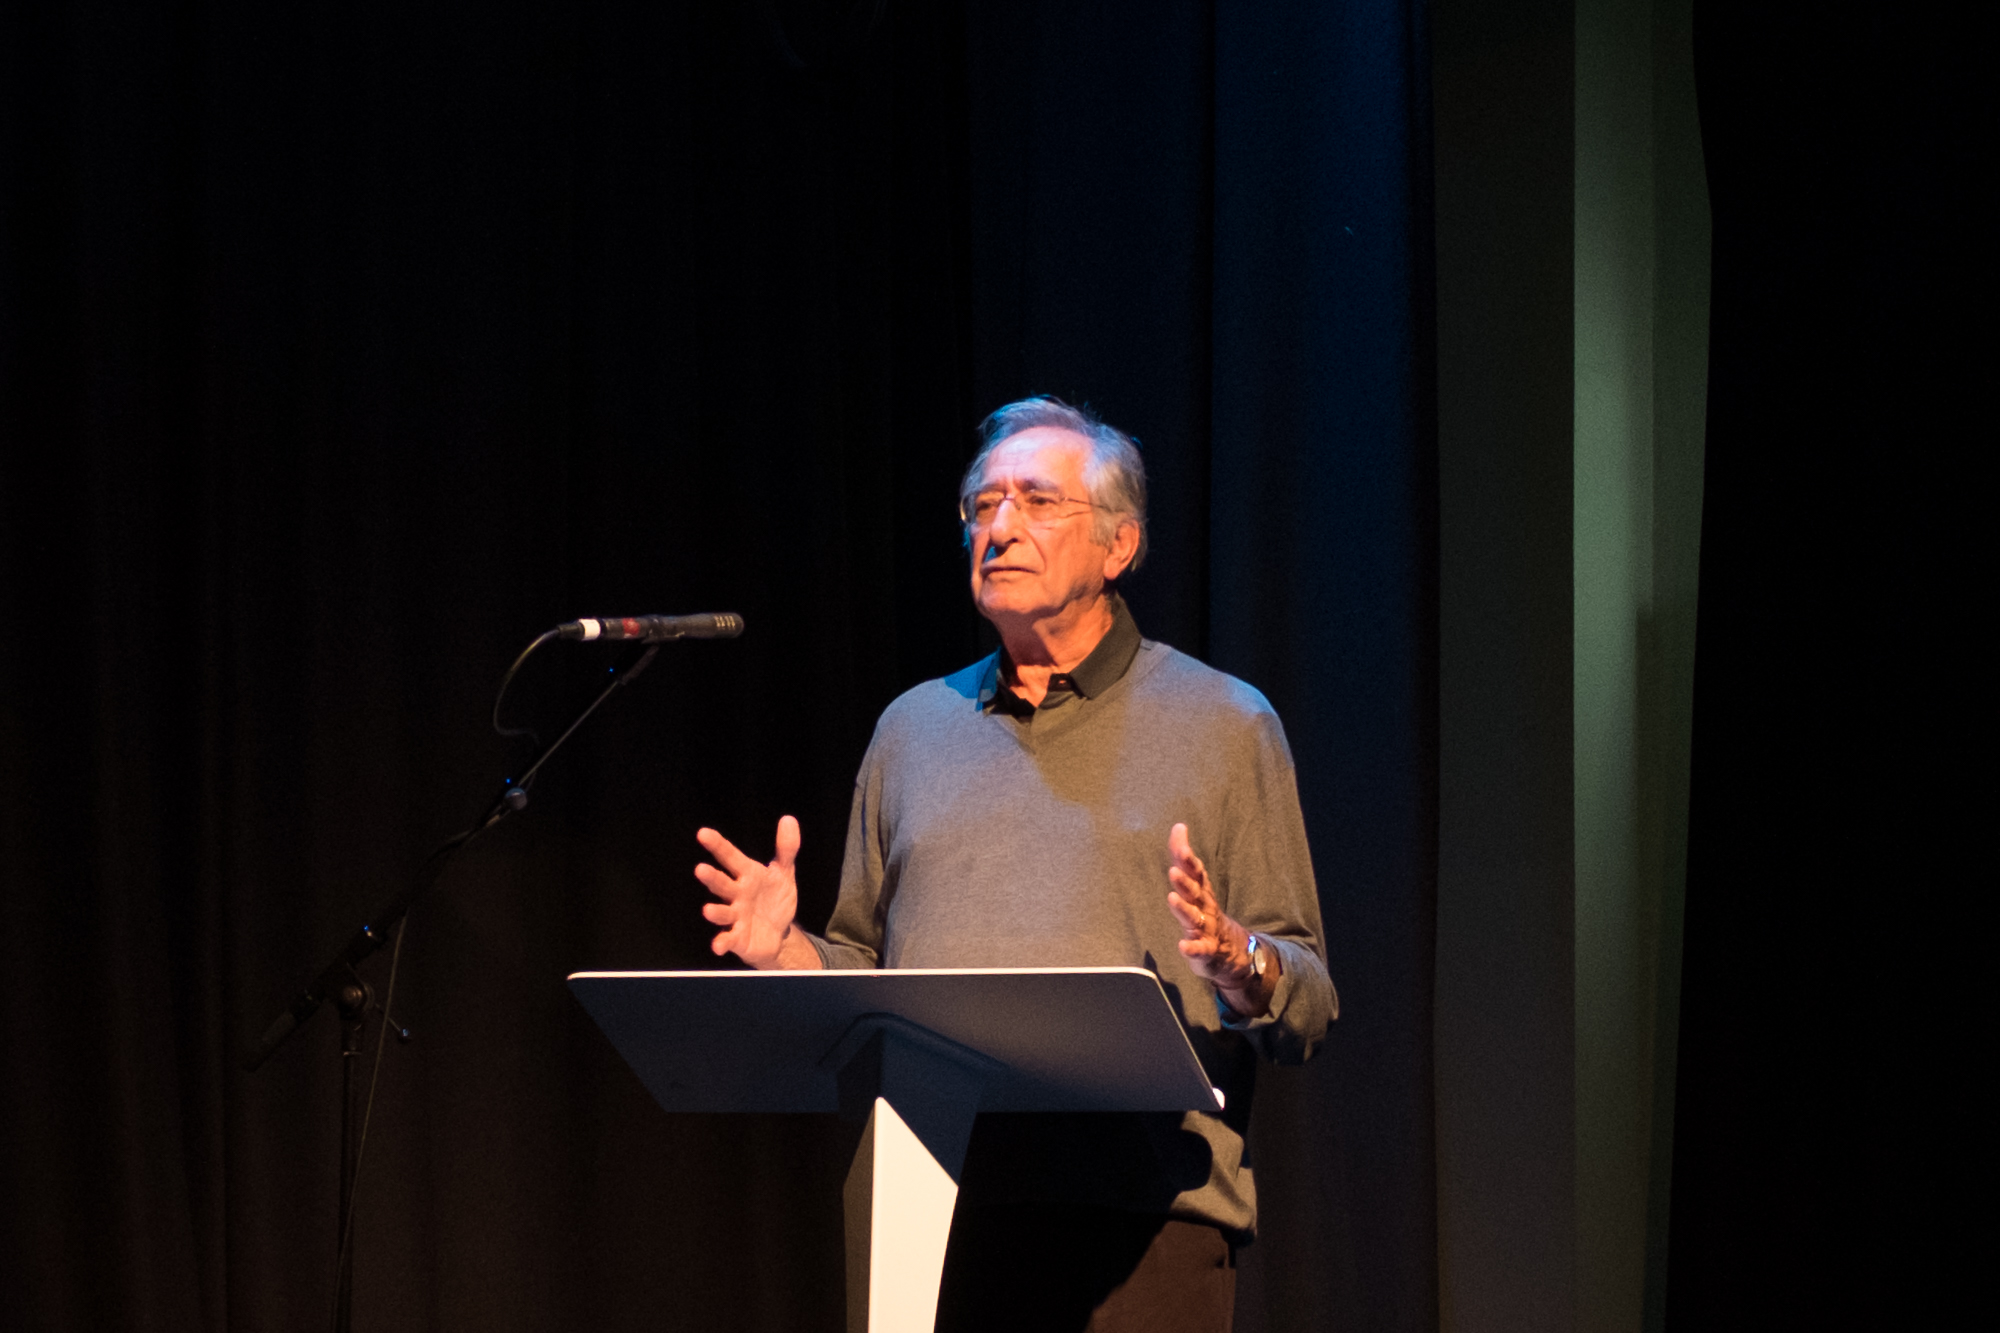 Chuck Rapoport speaking at the Aberfan conference held at Cardiff School of Journalism, Media and Cultural Studies, 8 September 2016. © Brian Carroll